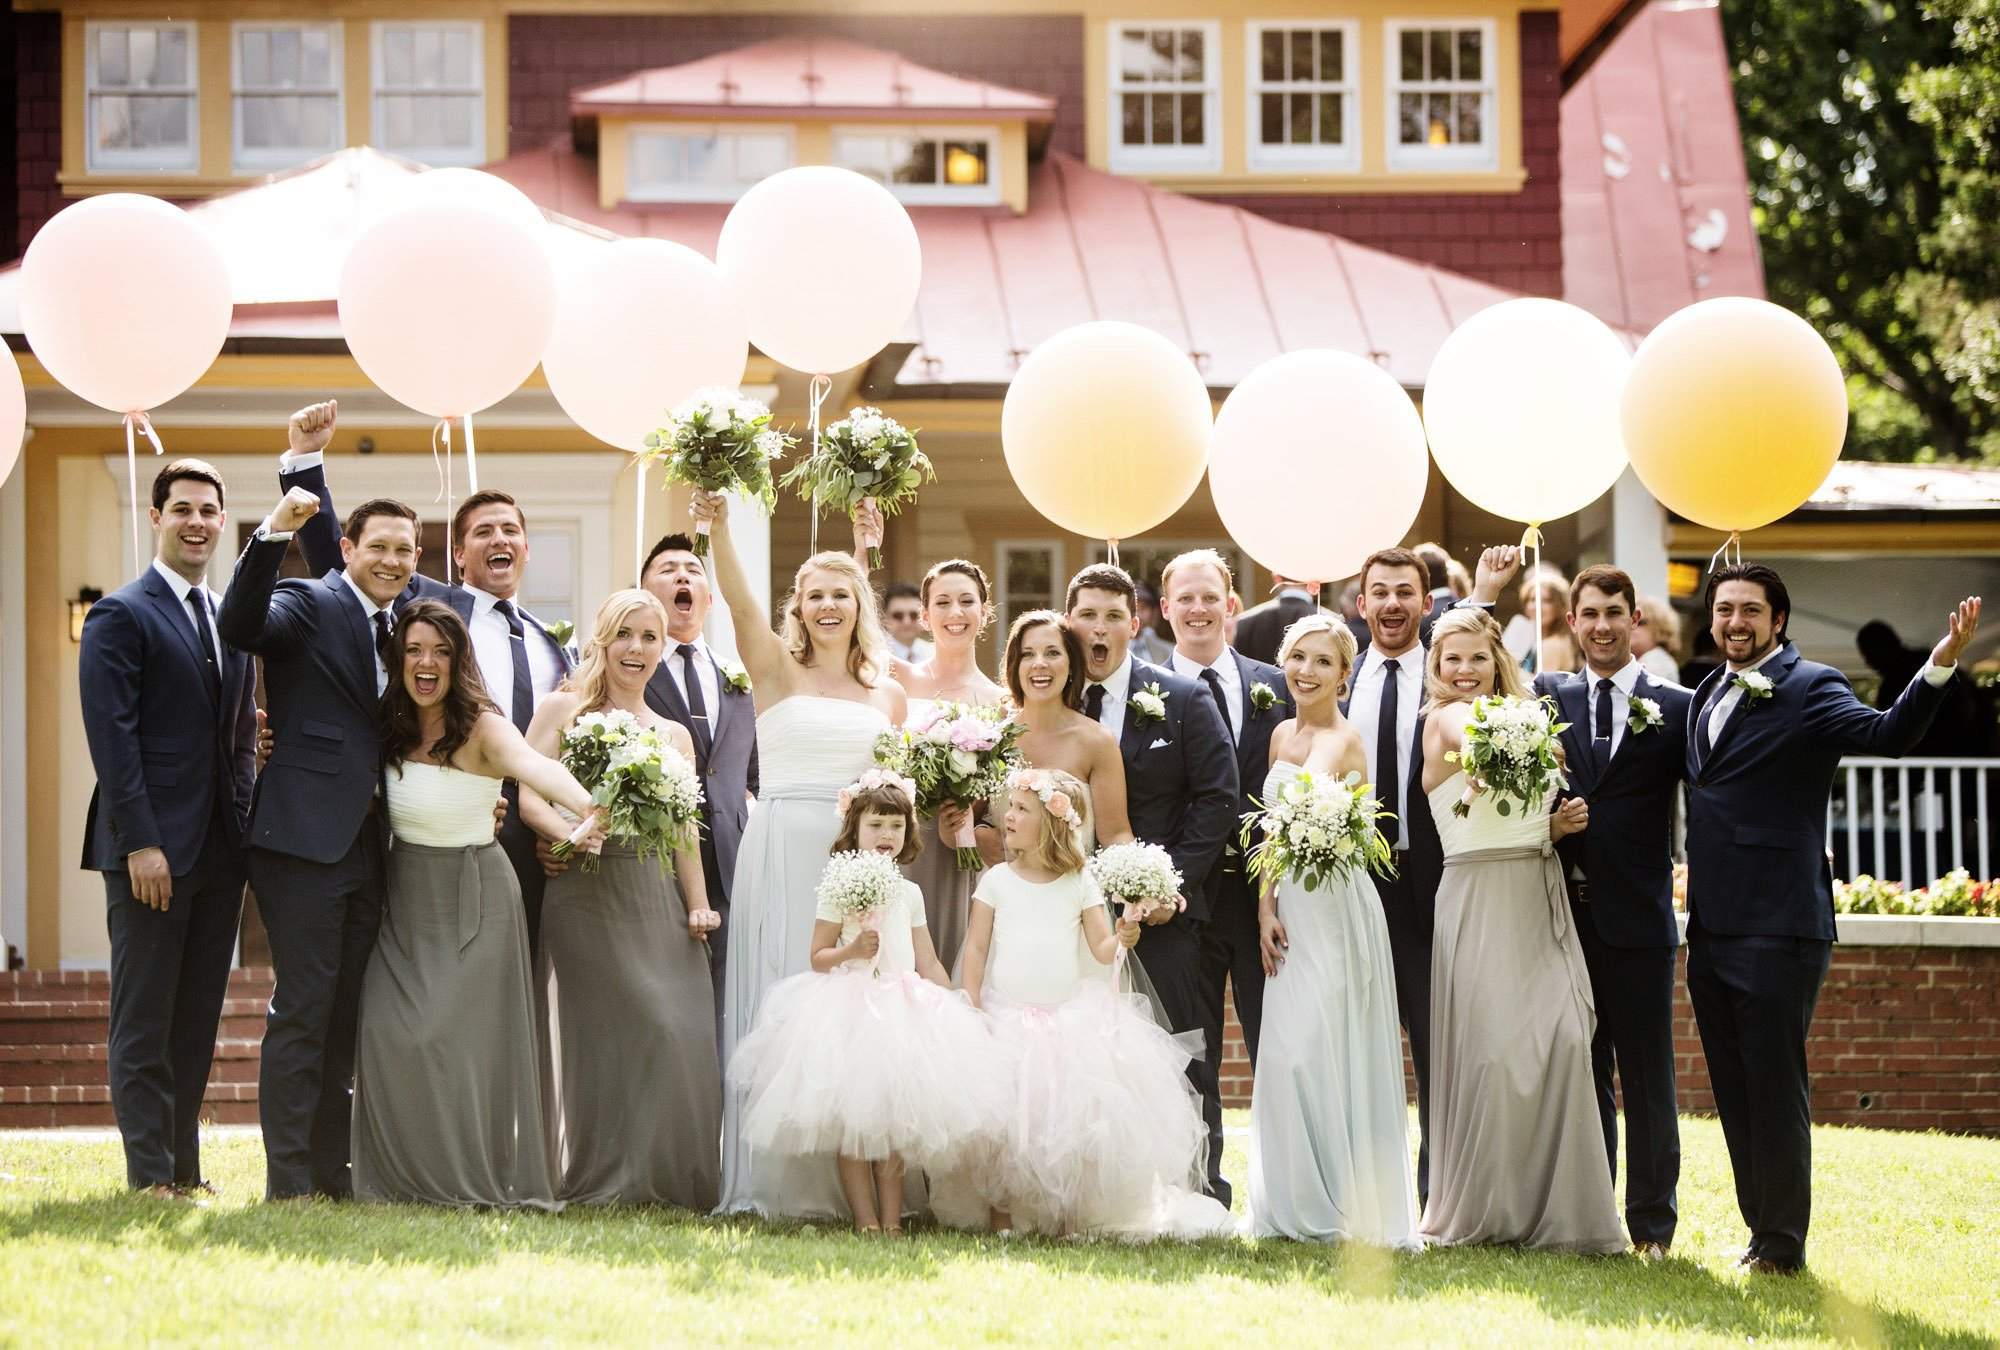 Hendry House Wedding in Arlington, VA  I  The wedding party cheers on the front lawn.